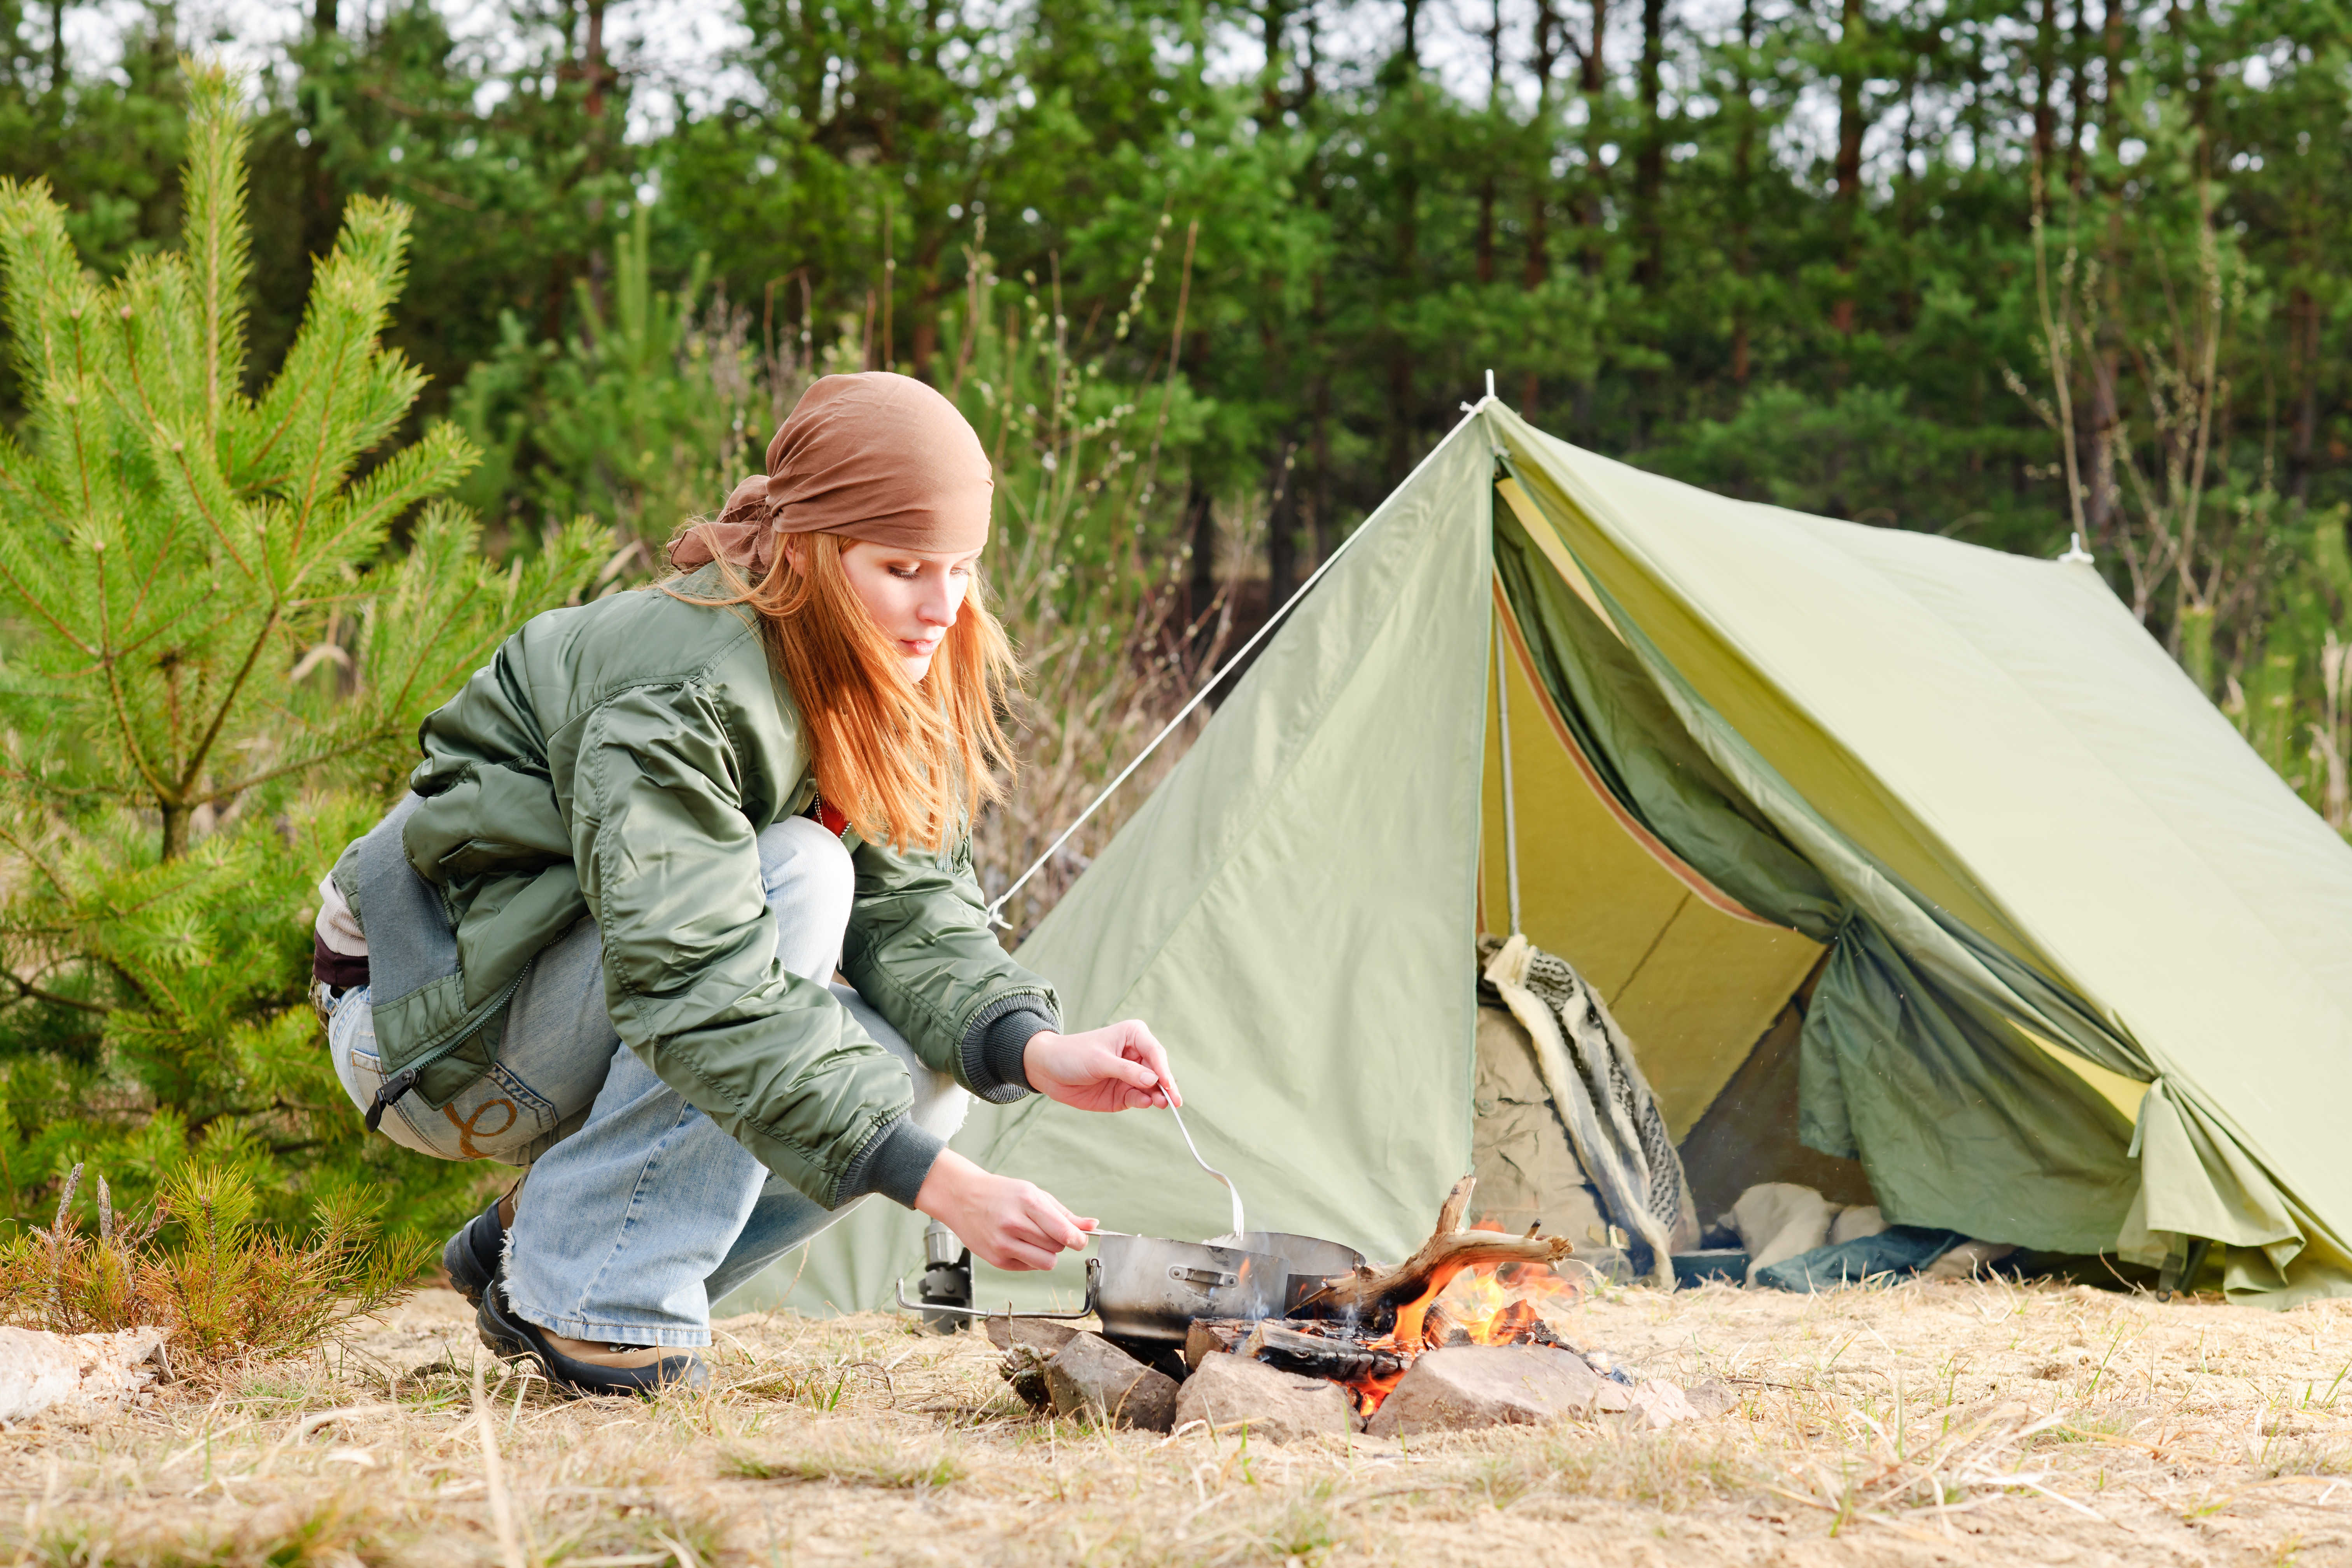 Camping happy woman cook food fire tent nature